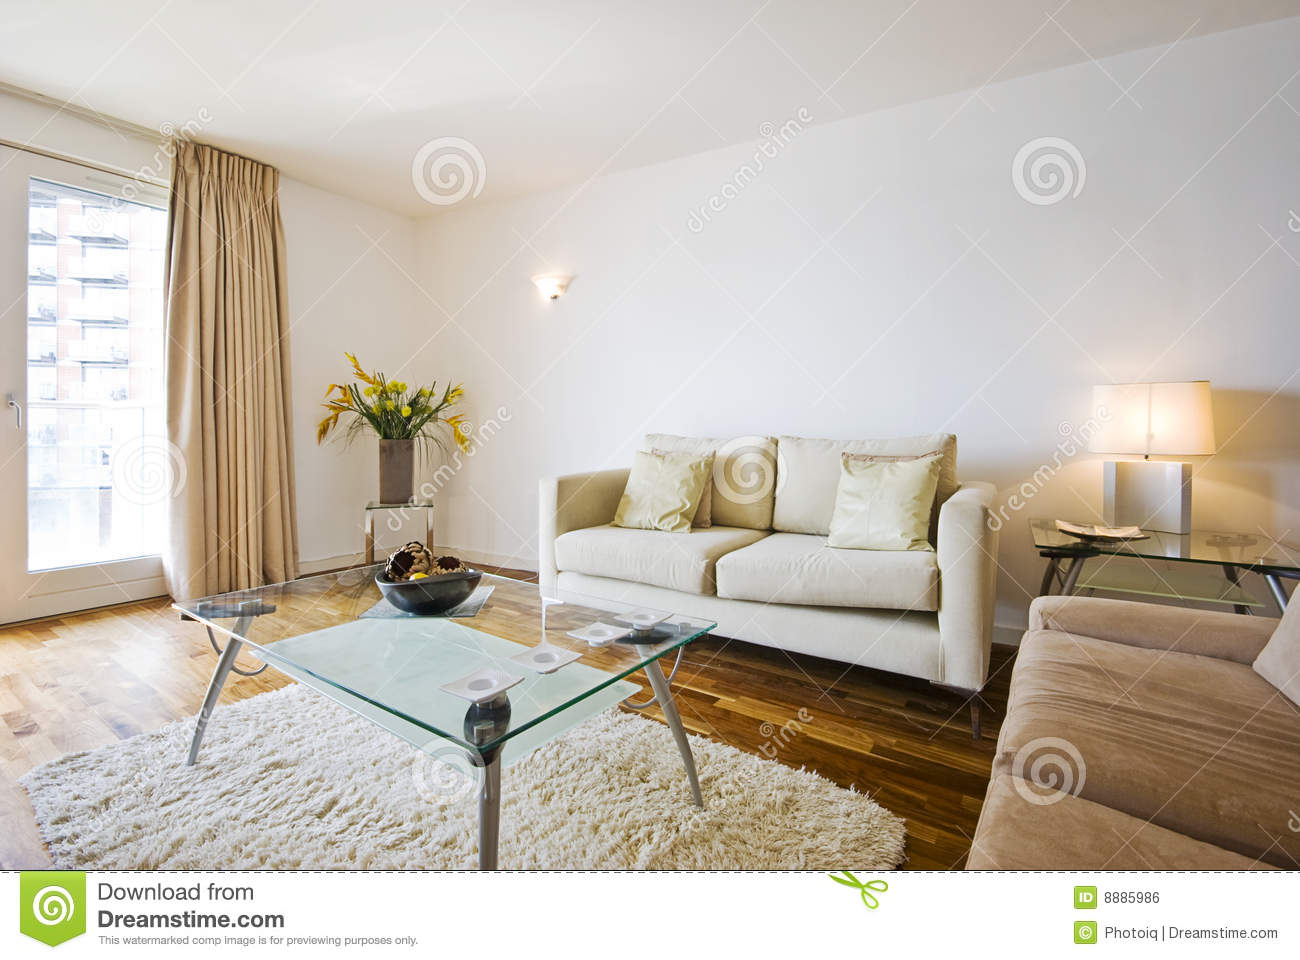 Smart Living Room Royalty Free Stock Image Image 8885986 : smart living room 8885986 from www.dreamstime.com size 1300 x 960 jpeg 132kB